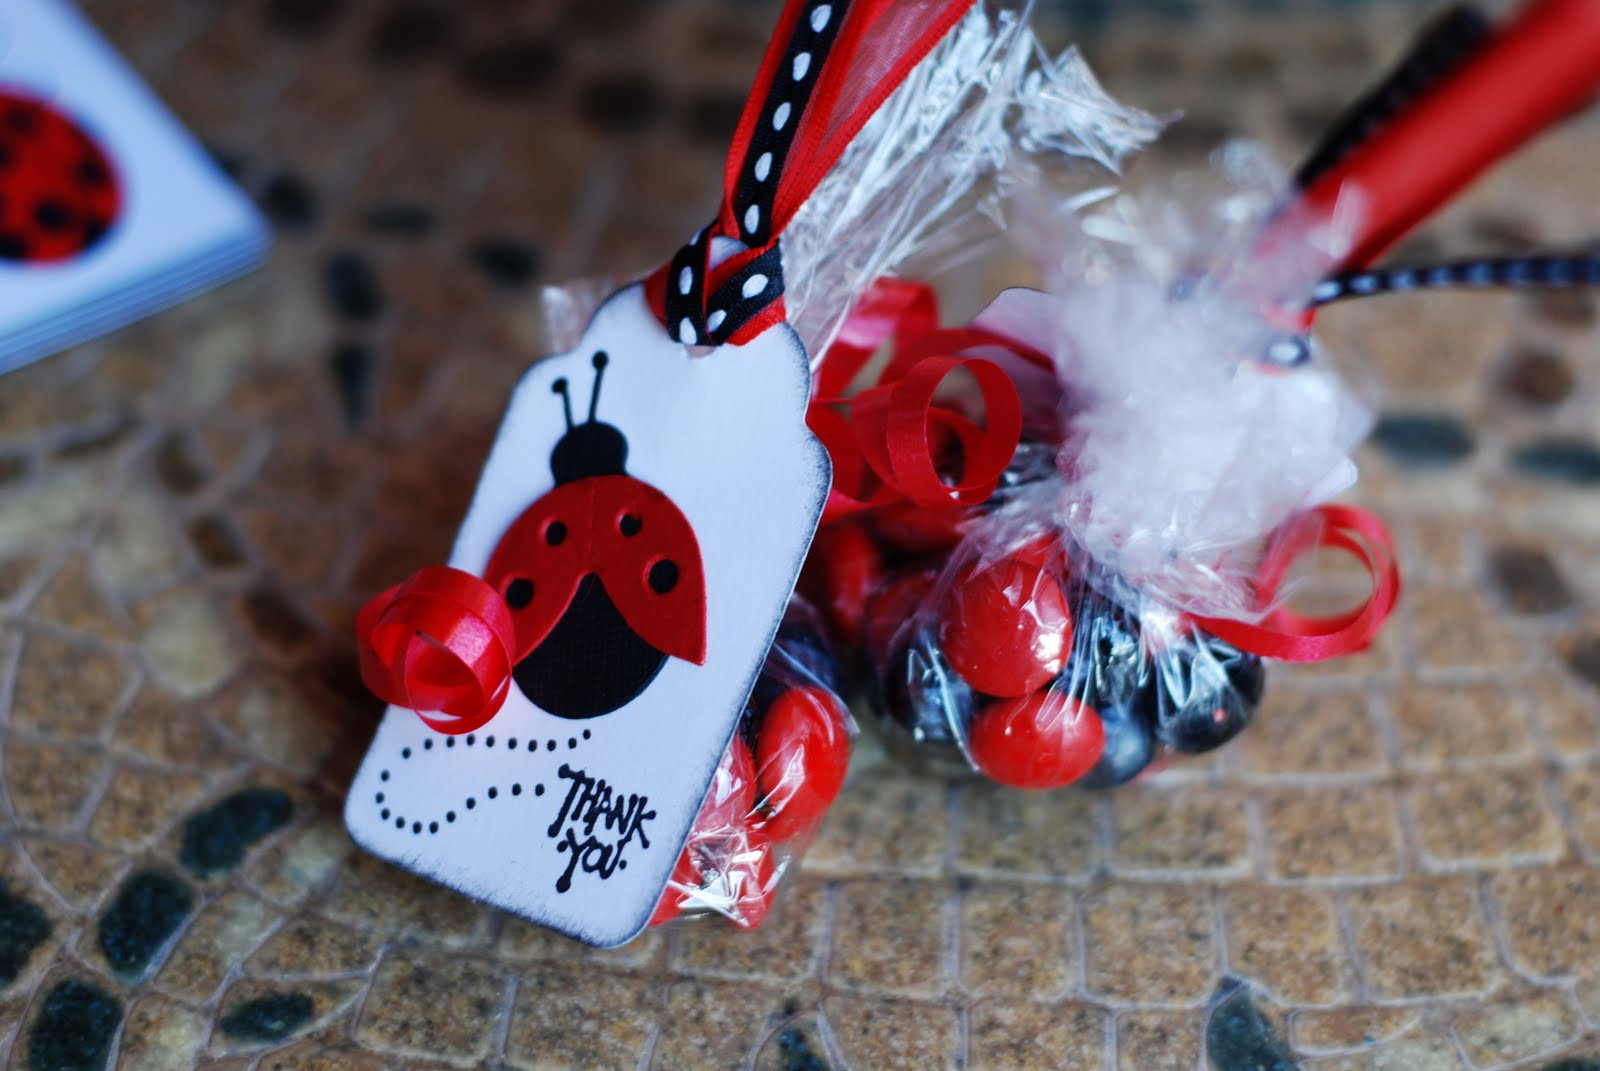 Best ideas about Ladybug Birthday Party . Save or Pin Ladybug Party – Style with Nancy Now.